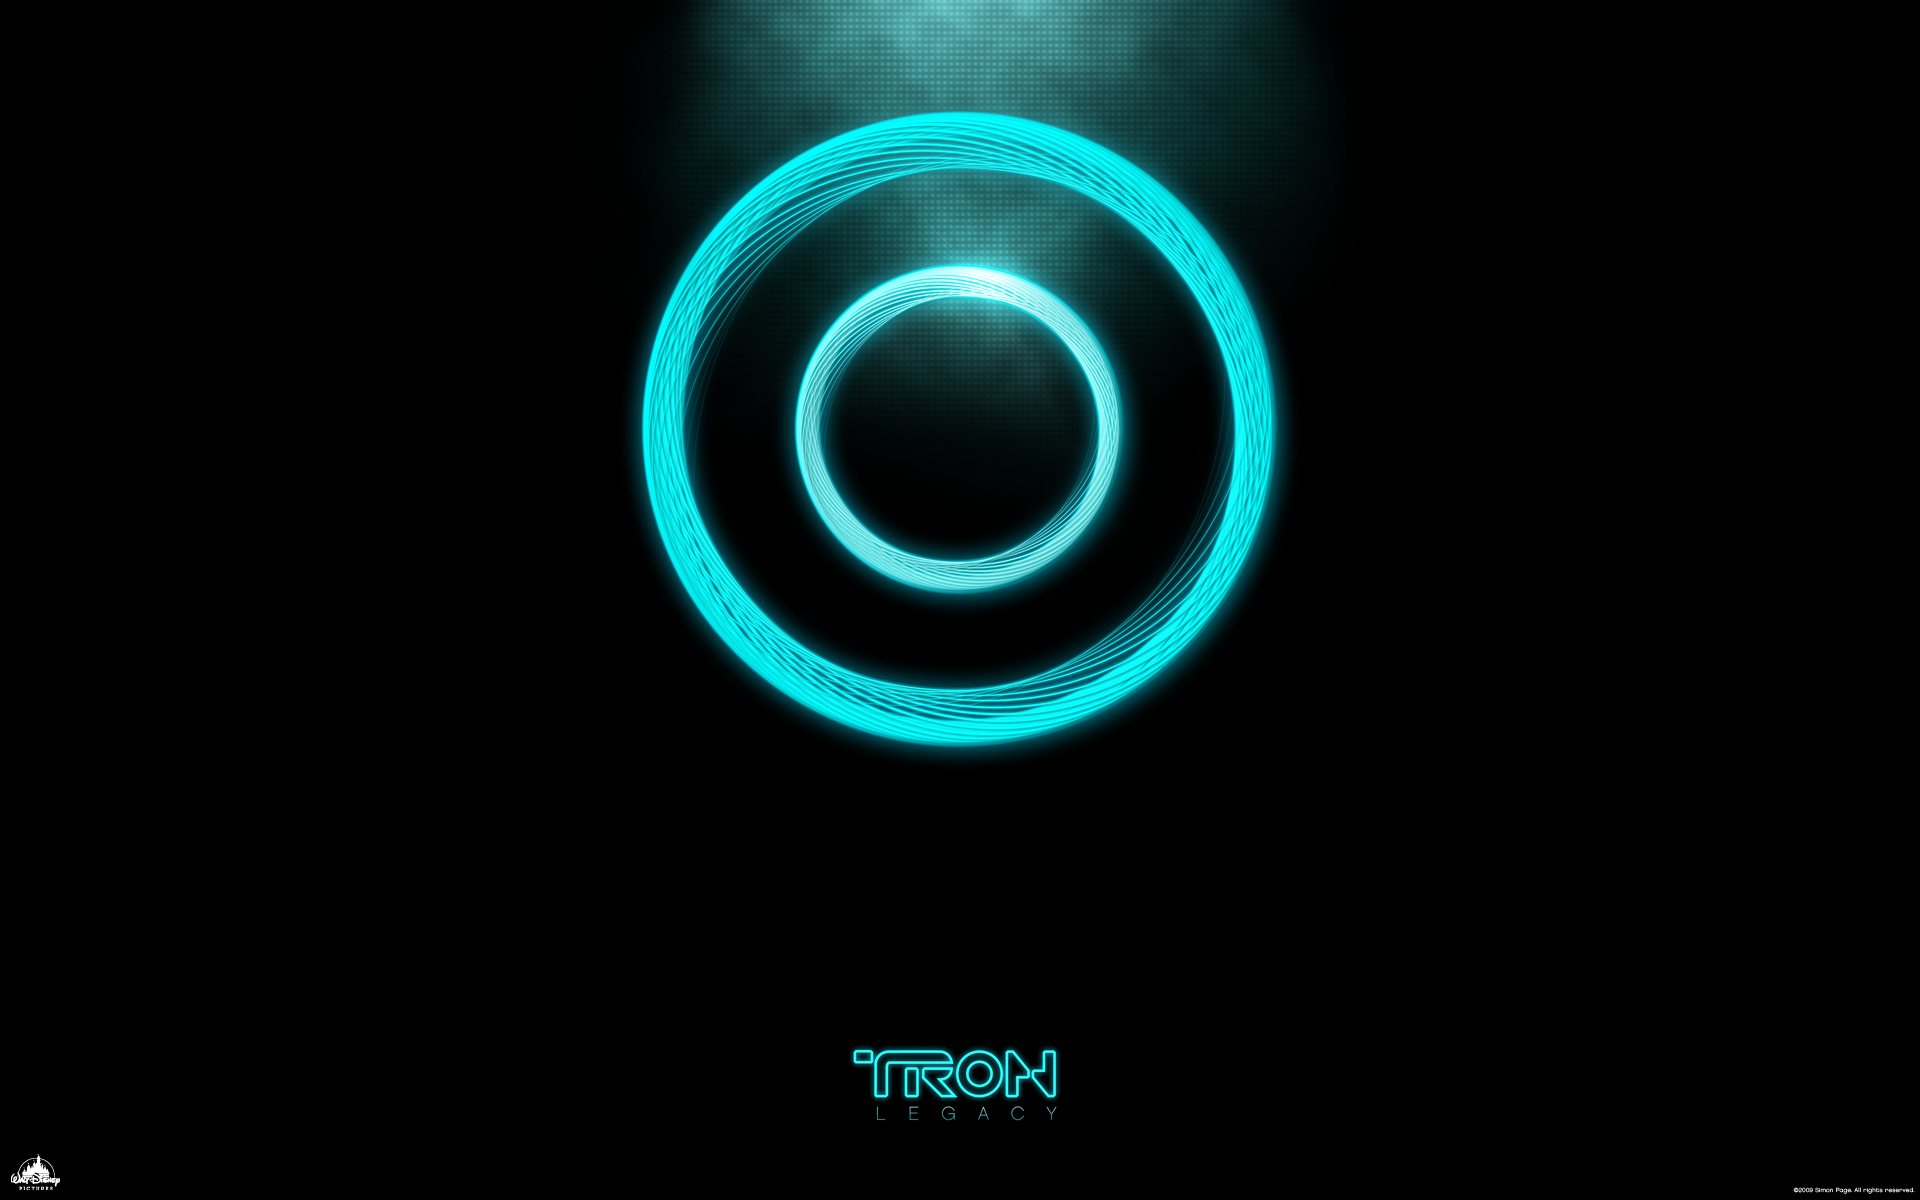 tron legacy wallpaper picture with high resolution wallpaper for